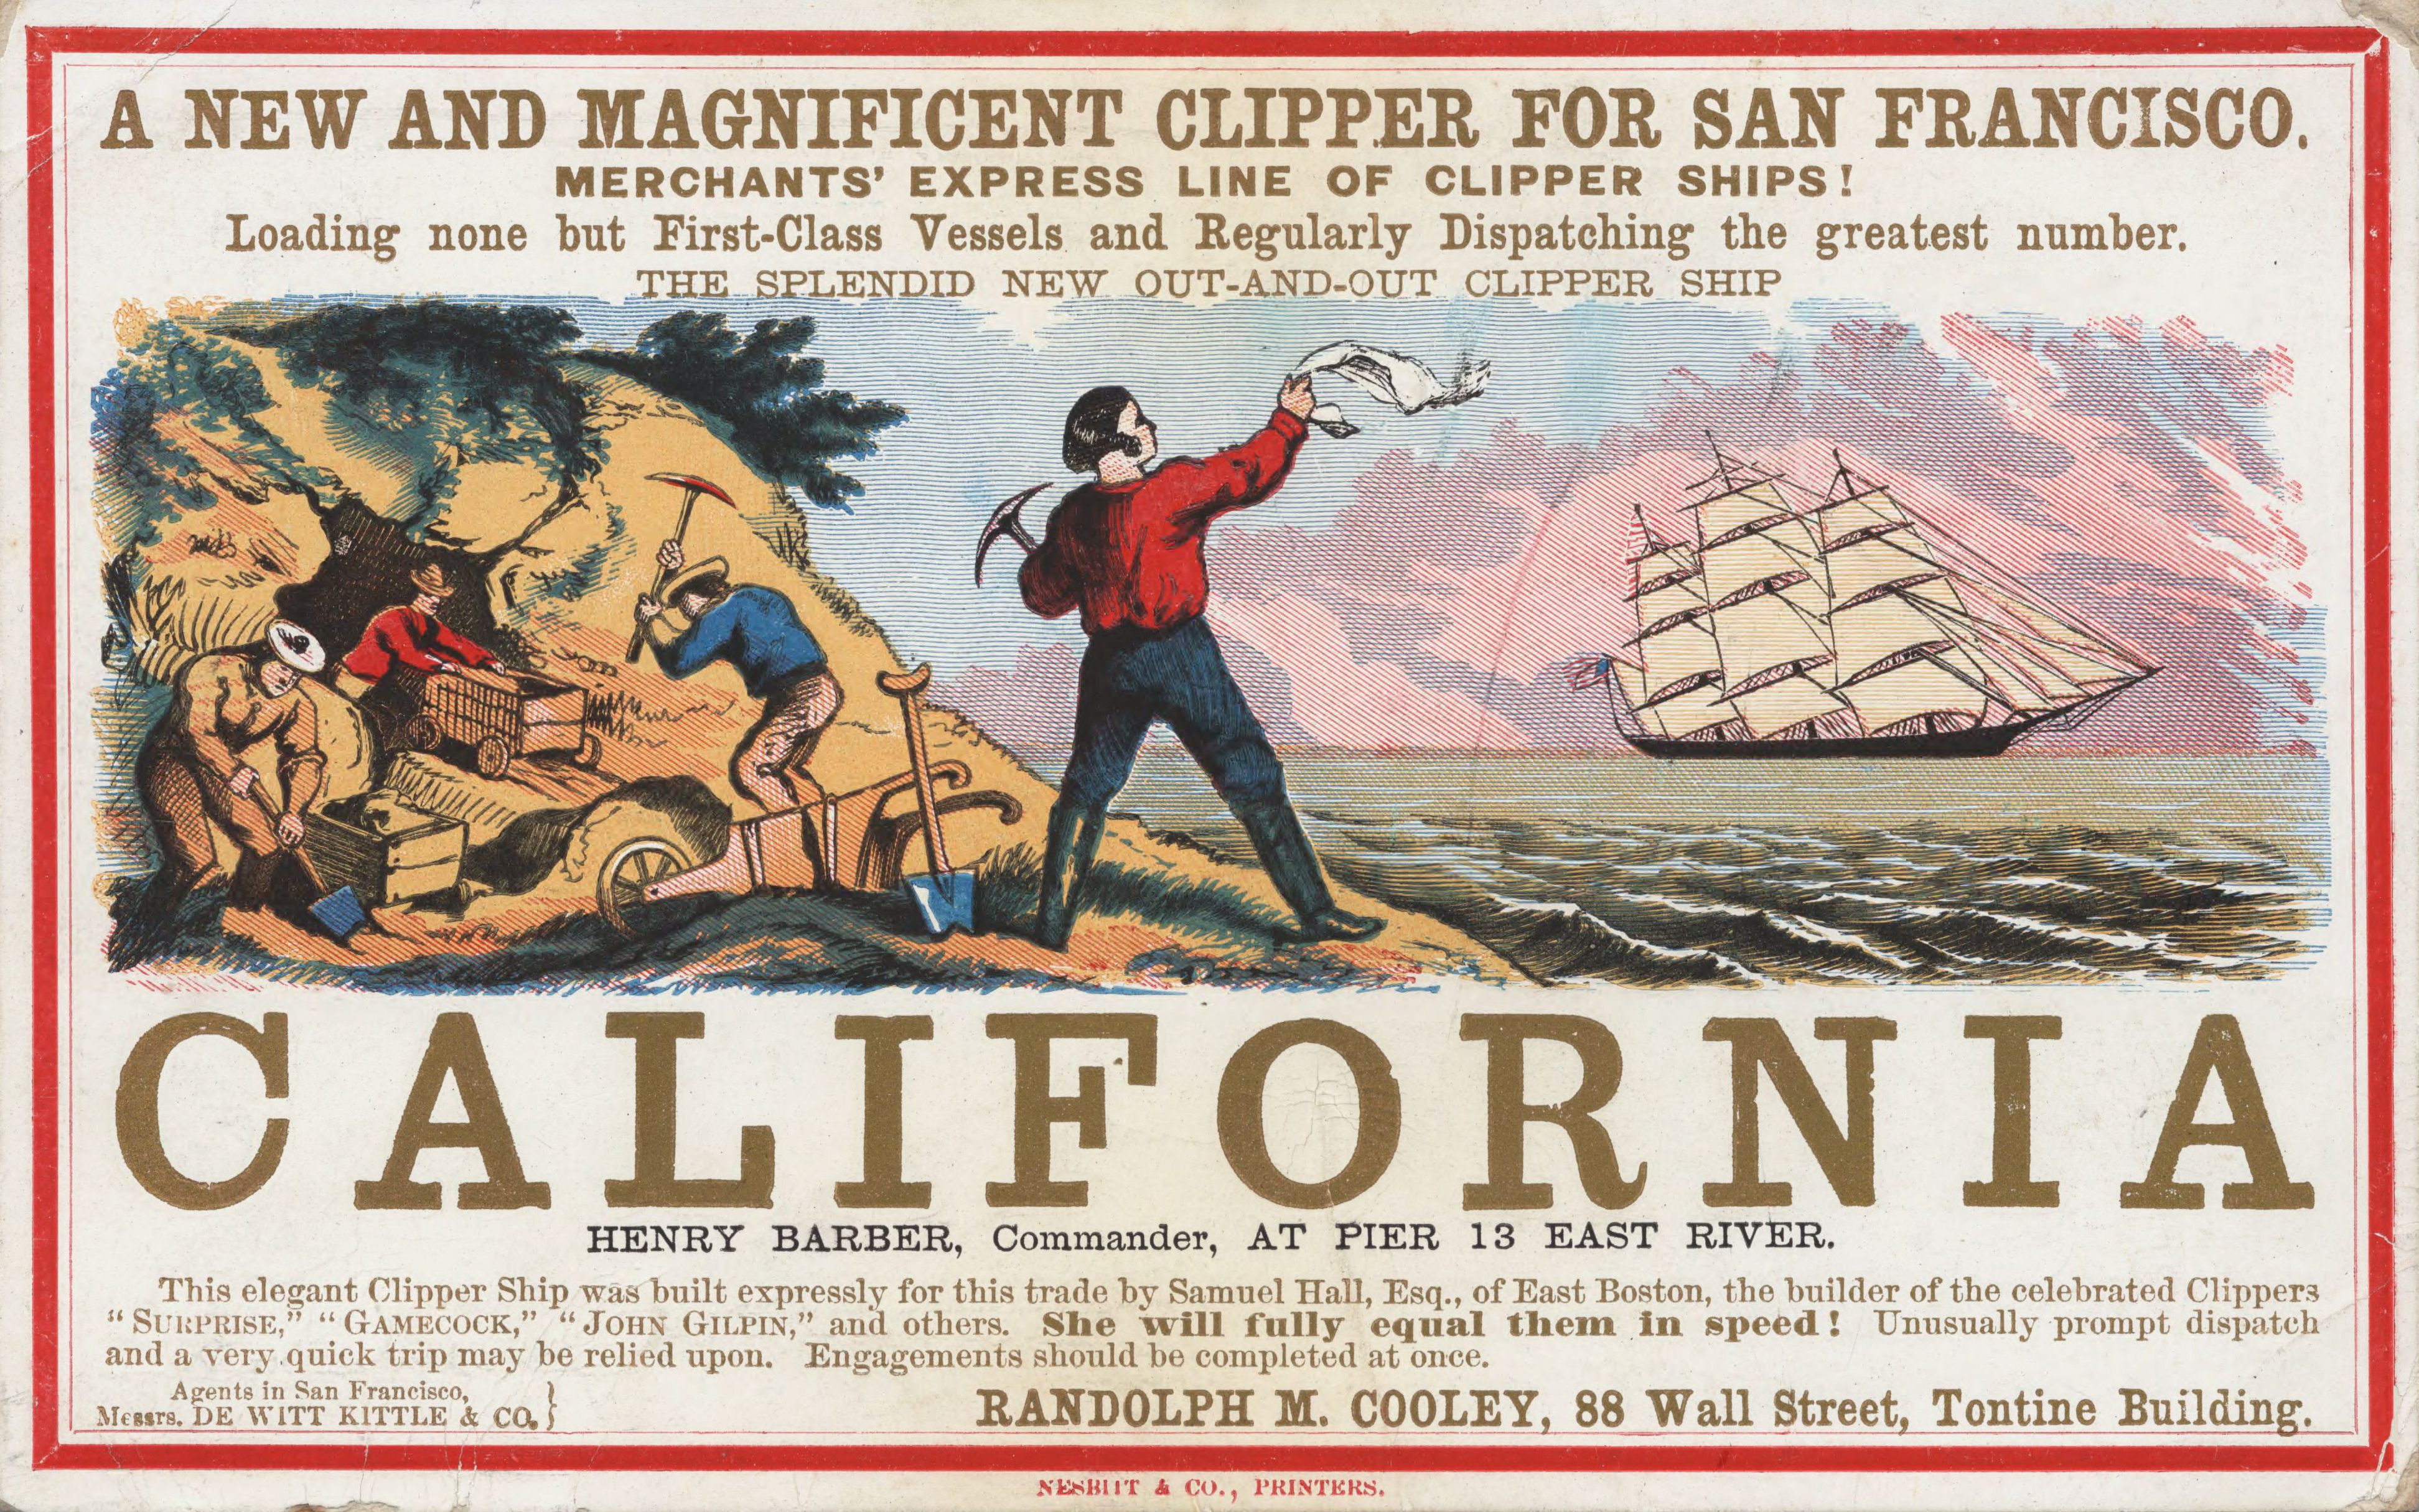 Sailing card for the clipper ship California, depicting scenes from the California gold rush, circa 1850.